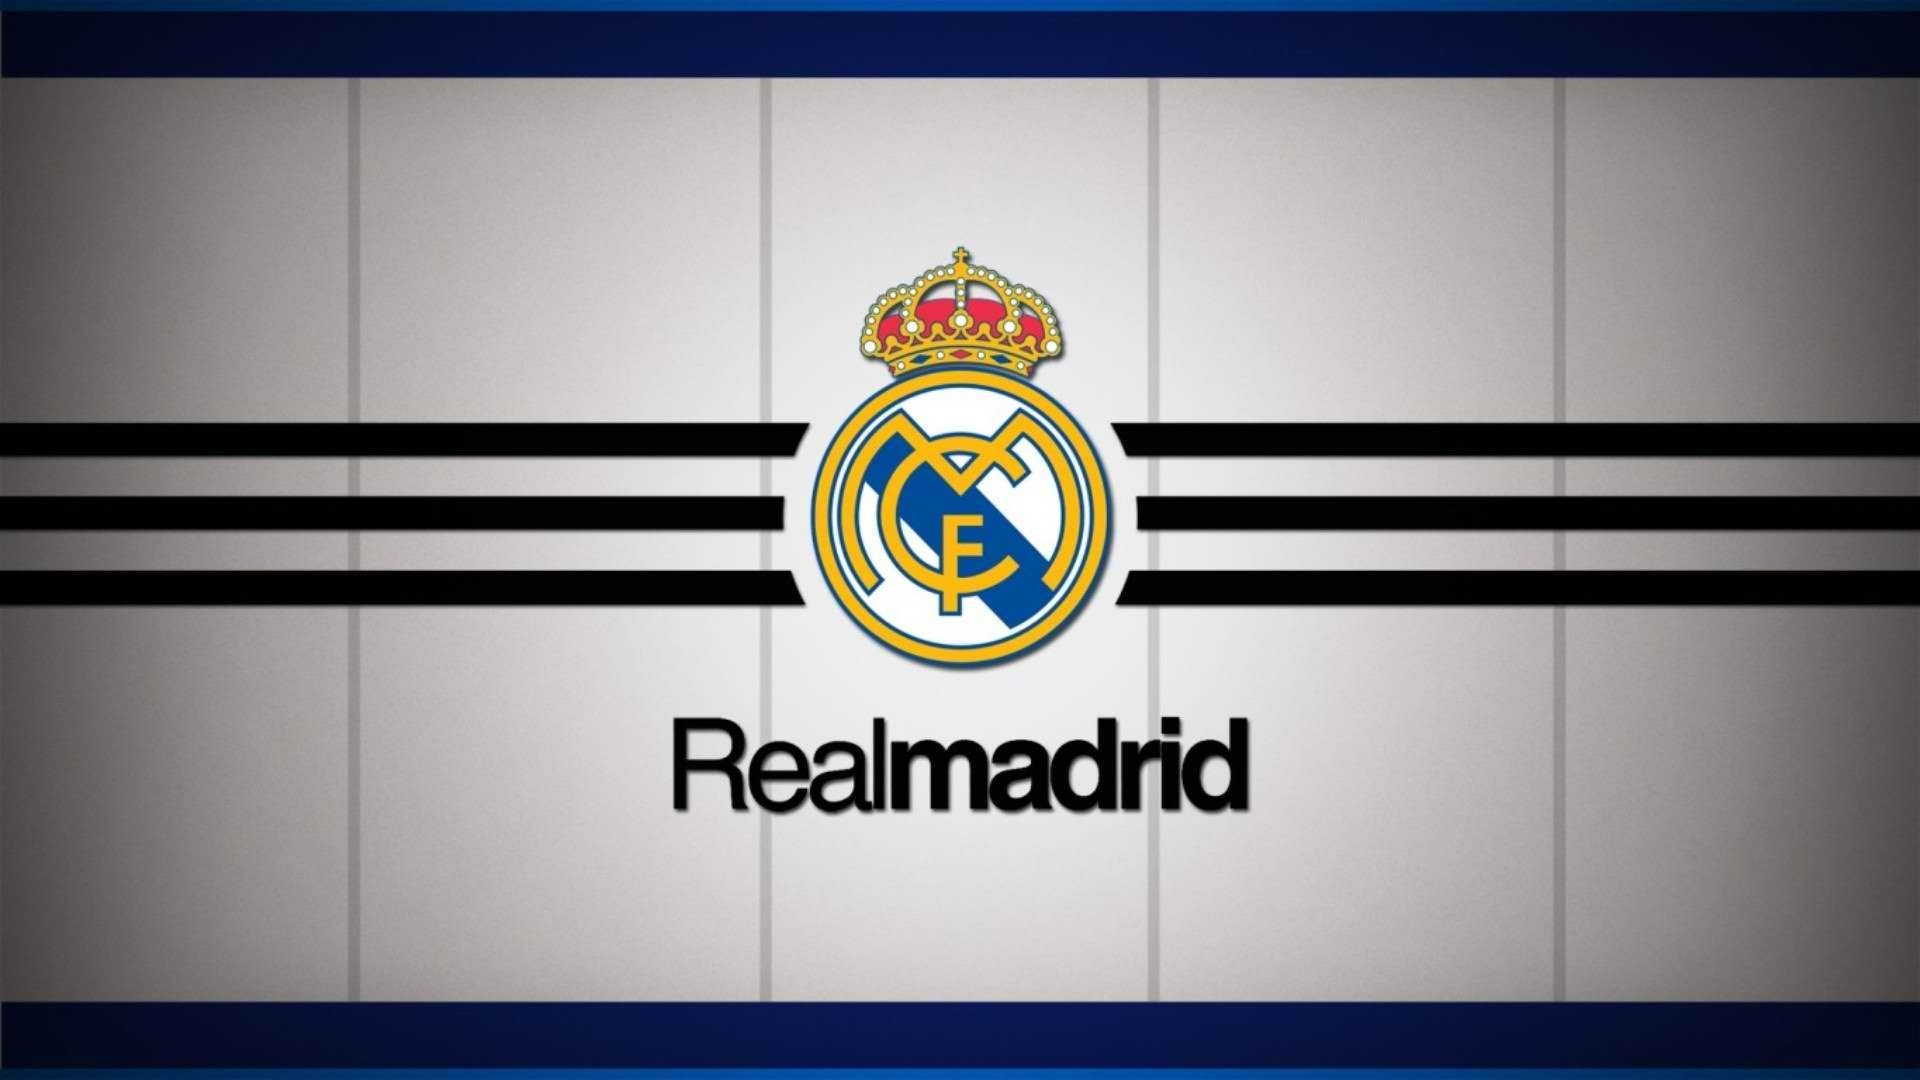 realmadrid wallpaper group (60+)